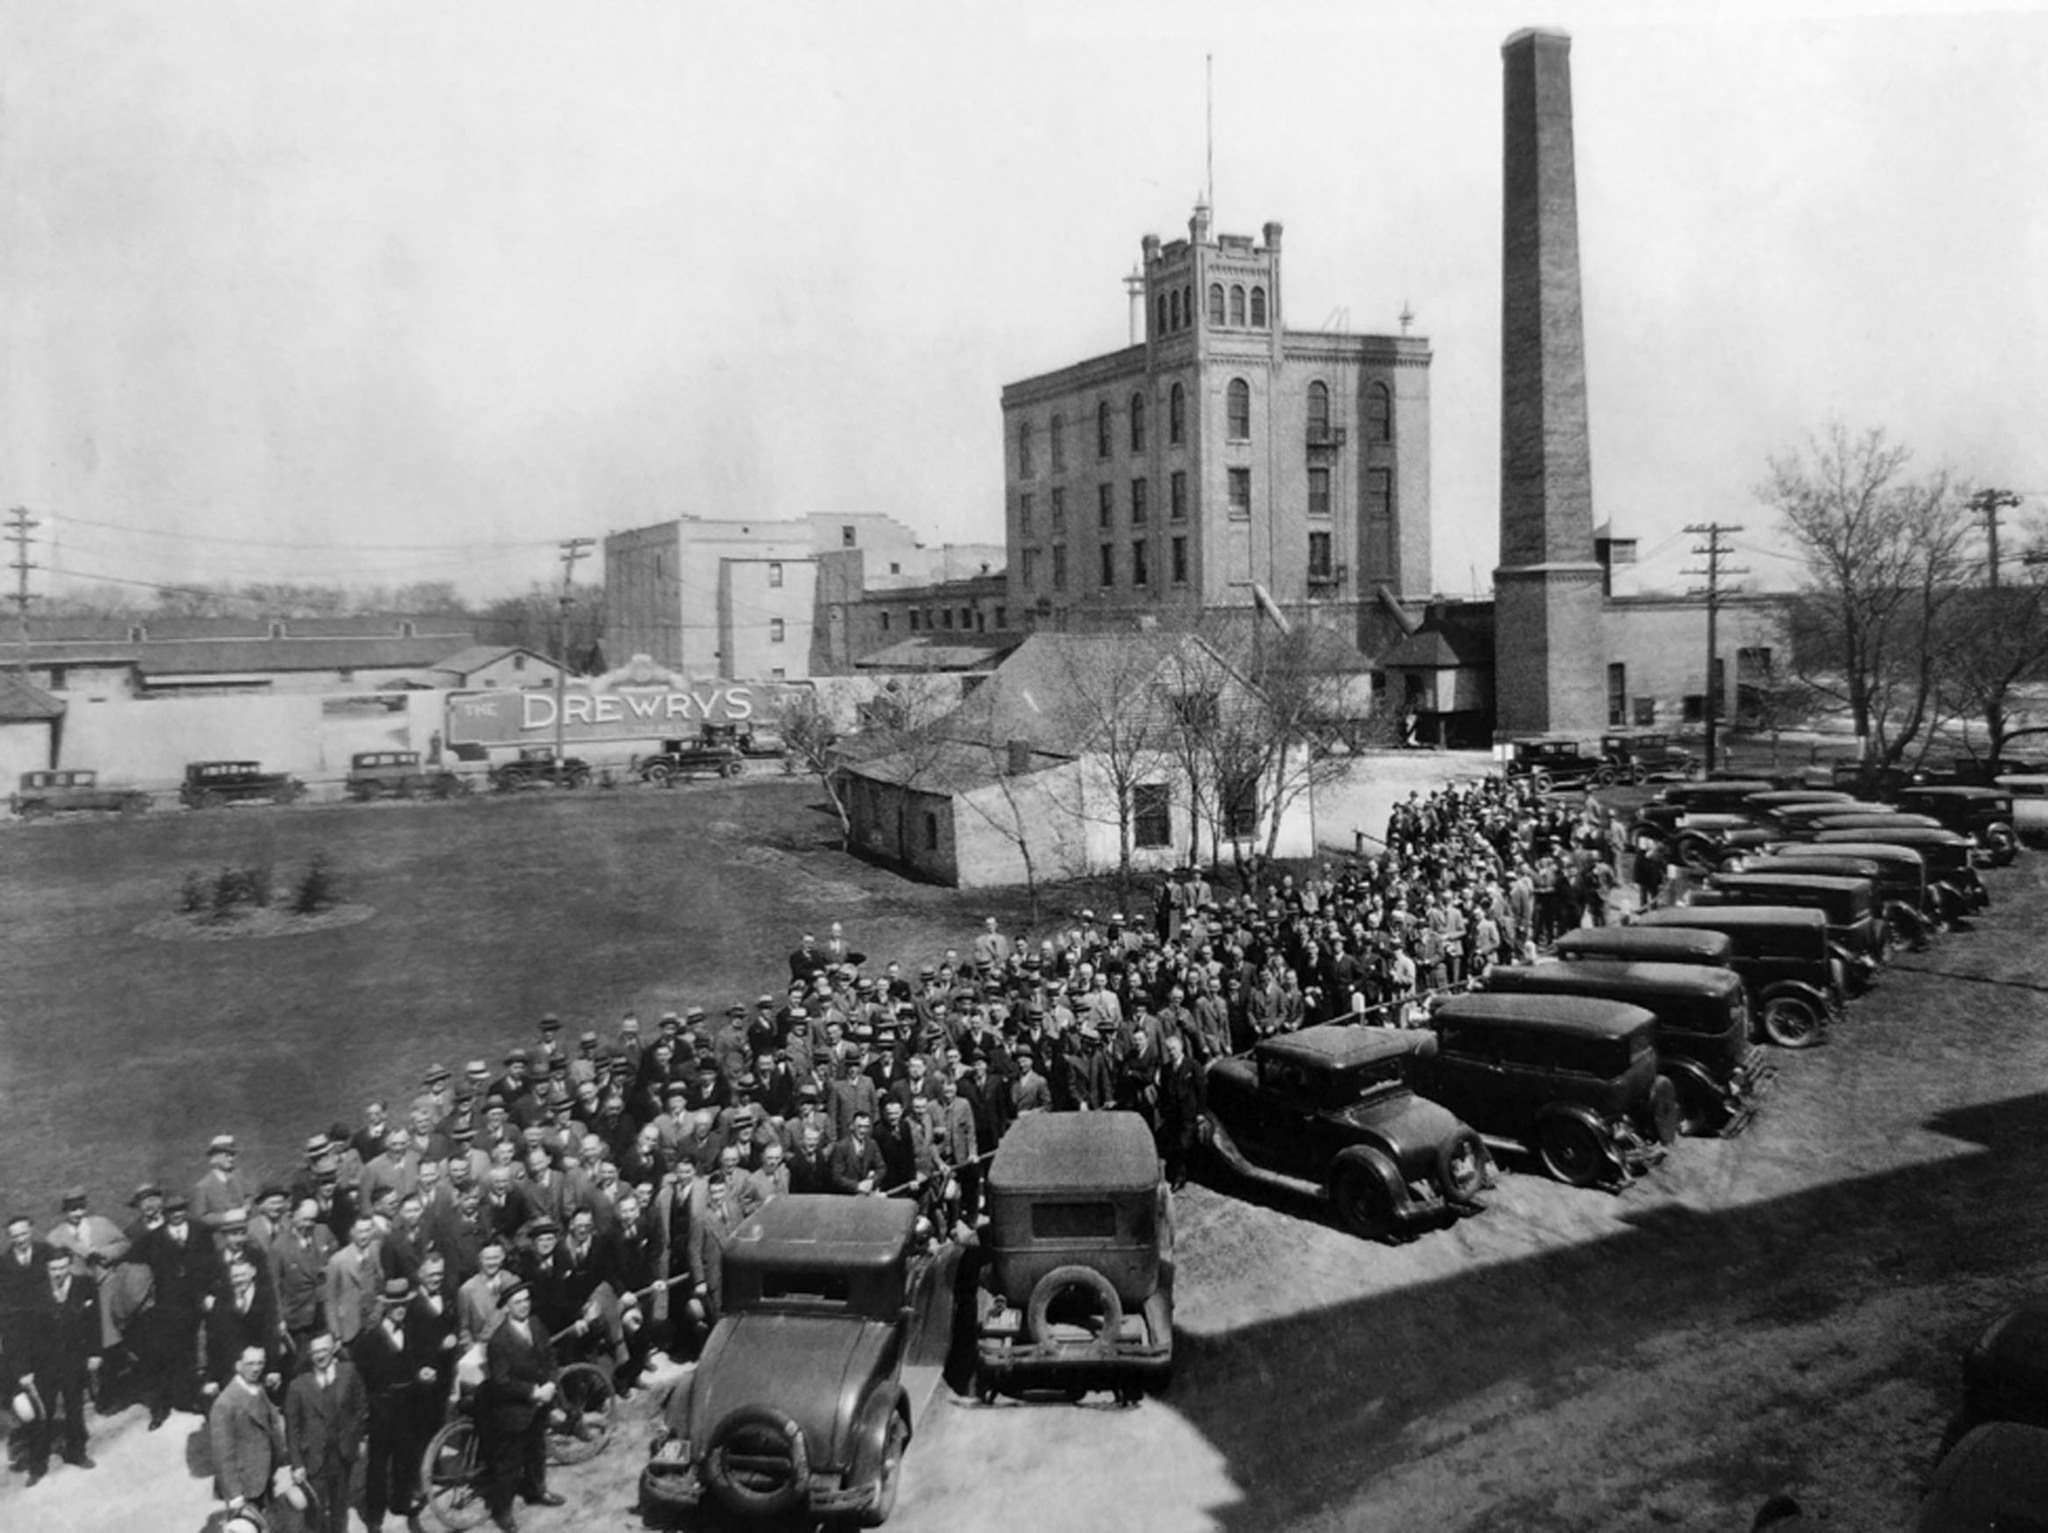 Archives of Manitoba</p><p>The Drewry Brewery at Main and Redwood Avenue was one of Winnipeg's most successful breweries in the 19th century. The company was eventually part of Carling Breweries before being acquired by Molson Breweries; the building stood until 1999.</p>